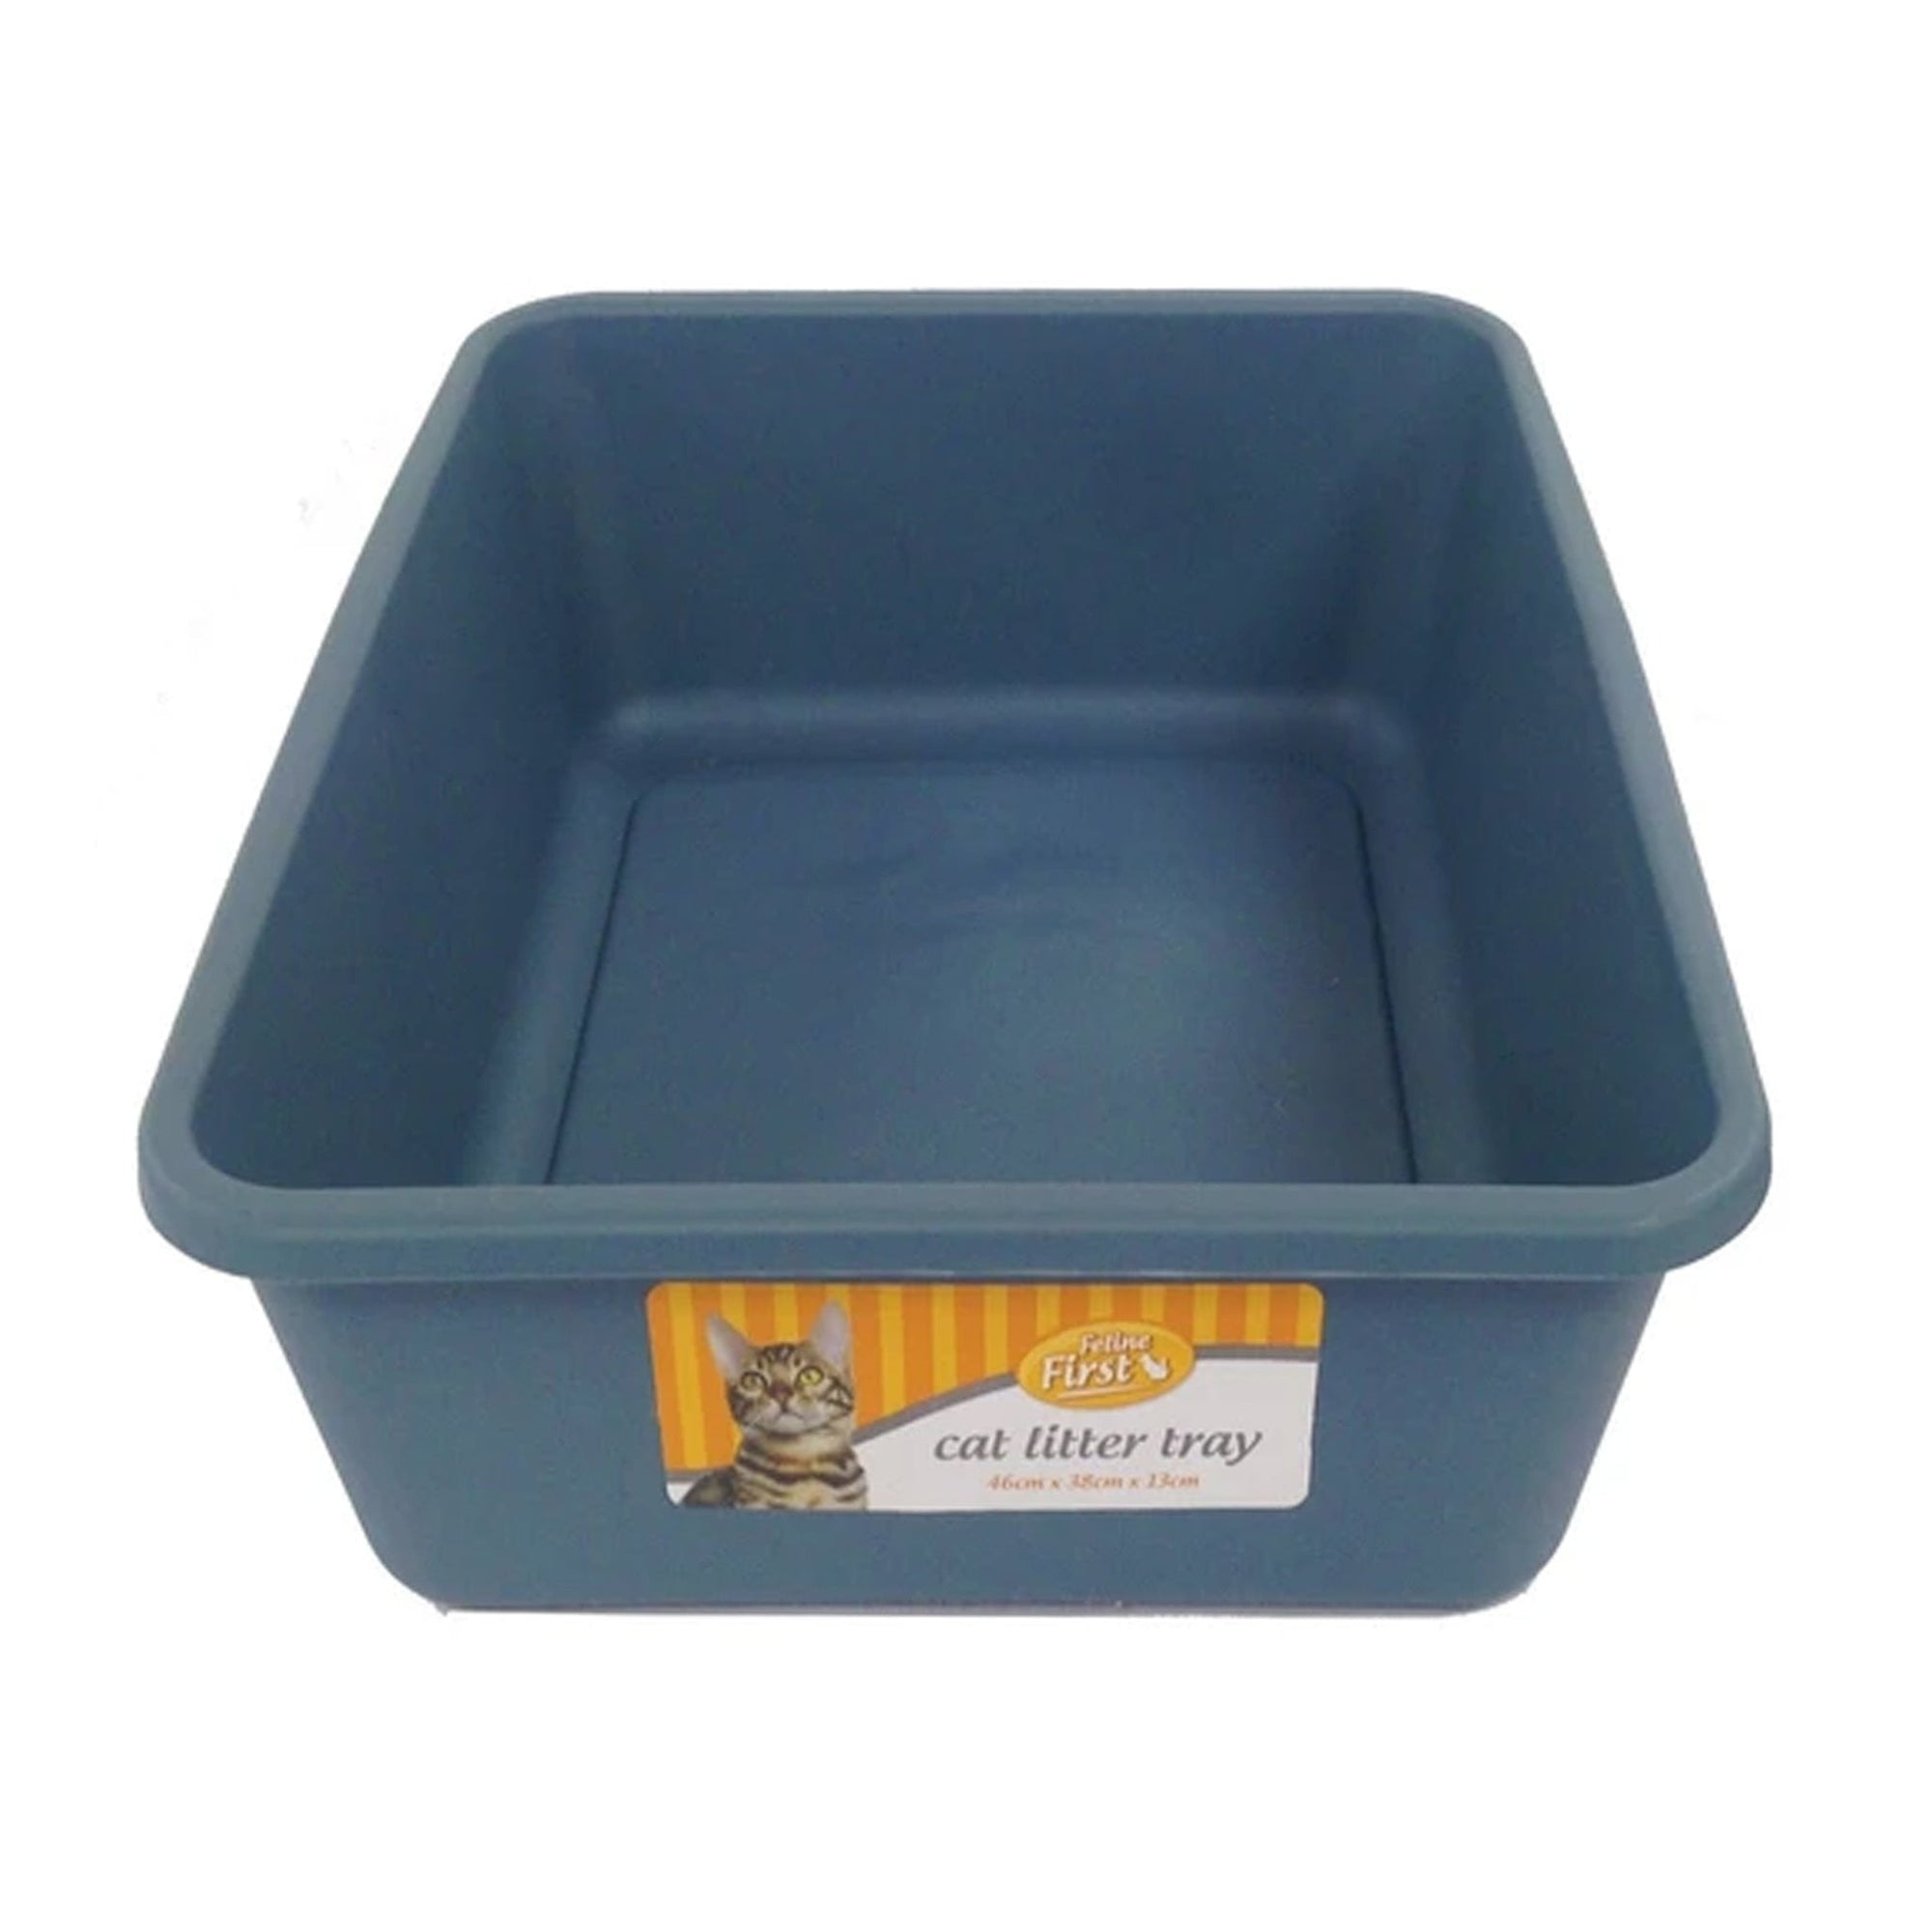 Feline First Cat Litter Tray 46 - ComfyPet Products